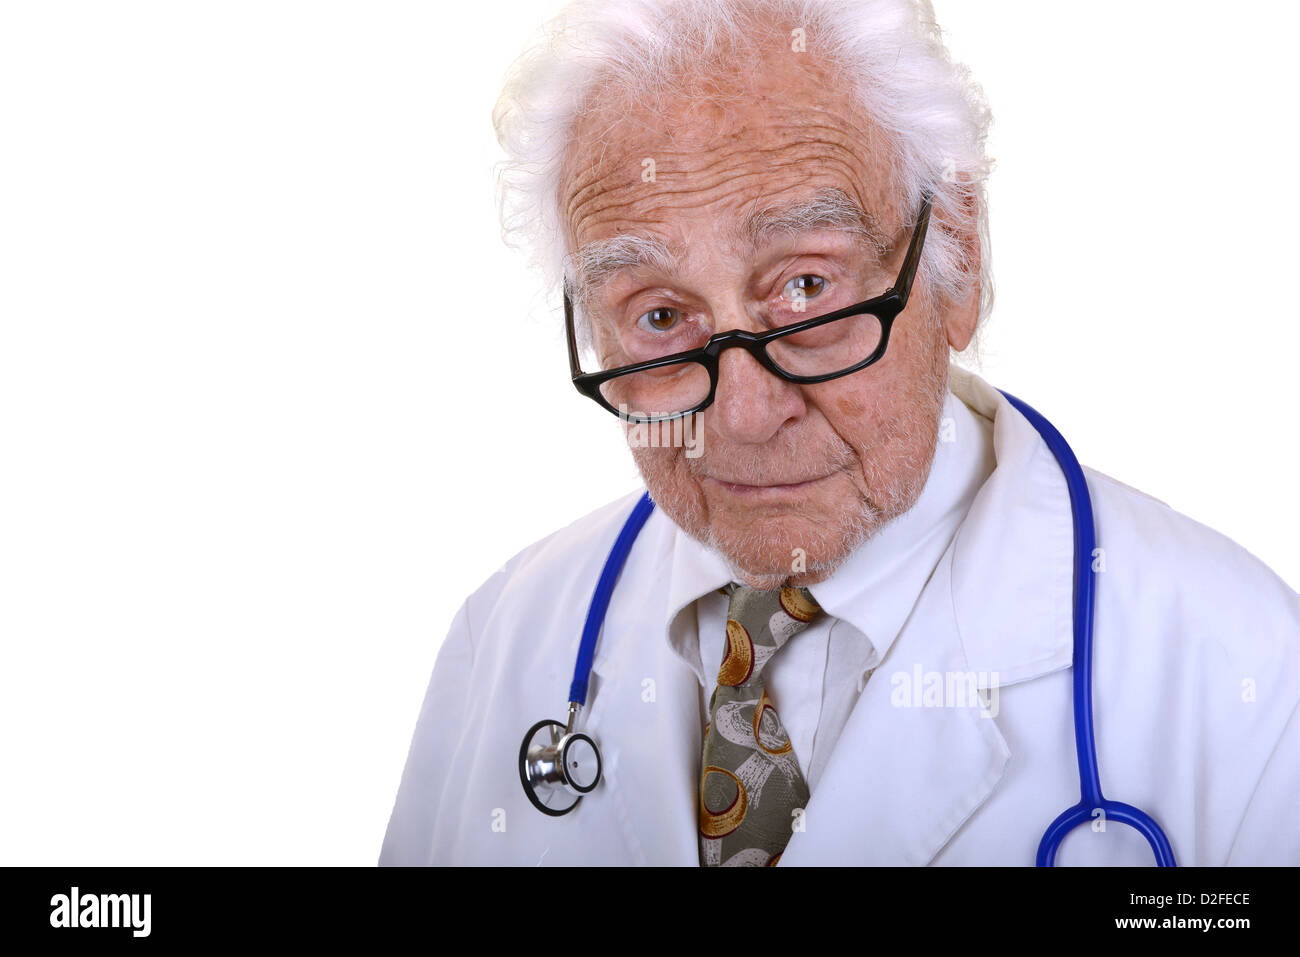 Kindly mature doctor wearing a white lab coat and glasses - Stock Image